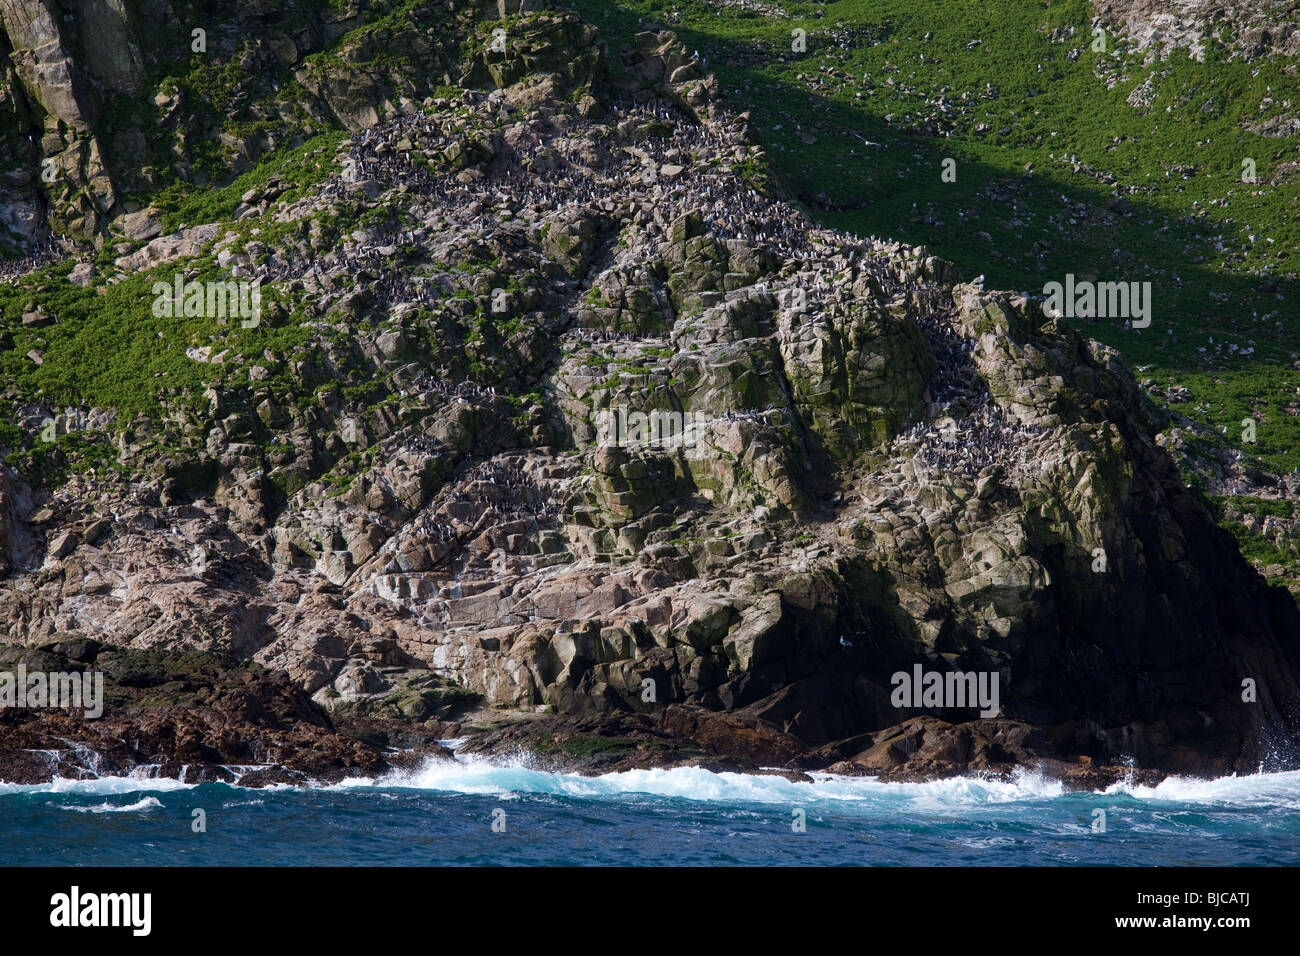 Colony of Common Murres or Common Guillemots (Uria aalge) nesting on the Farallon Islands, Pacific Ocean, California, USA Stock Photo